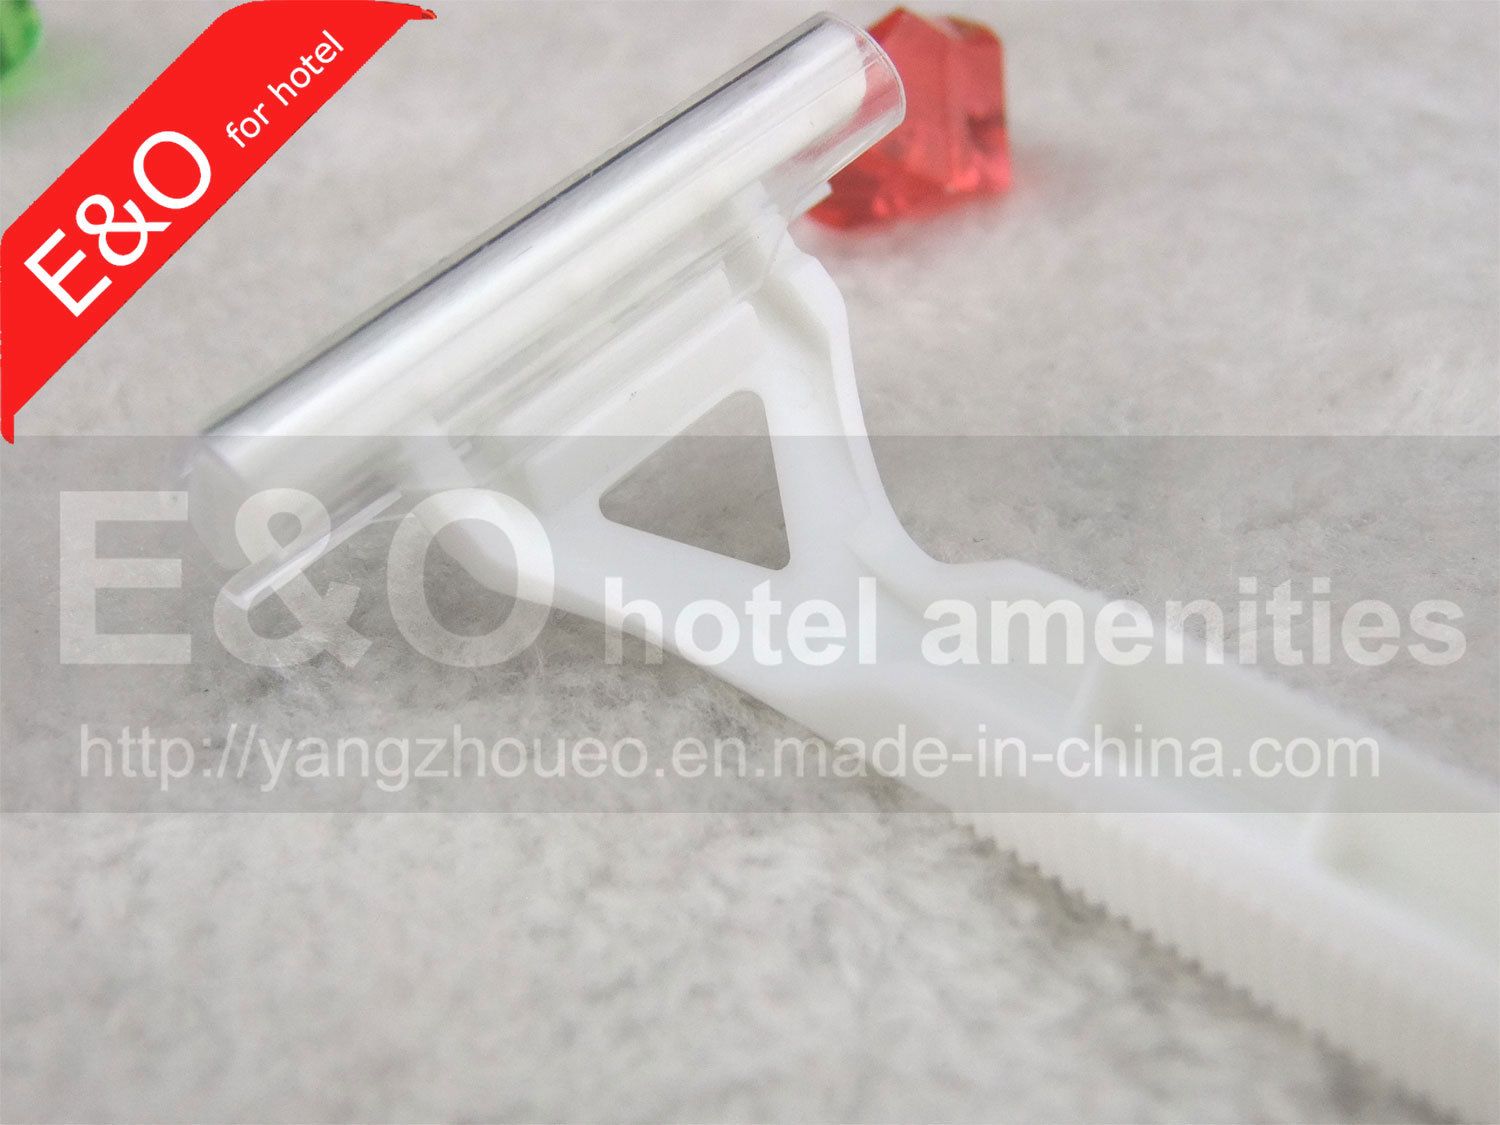 Disposable Razor/Hotel Amenity /Hotel Shaving Kit in High Demand